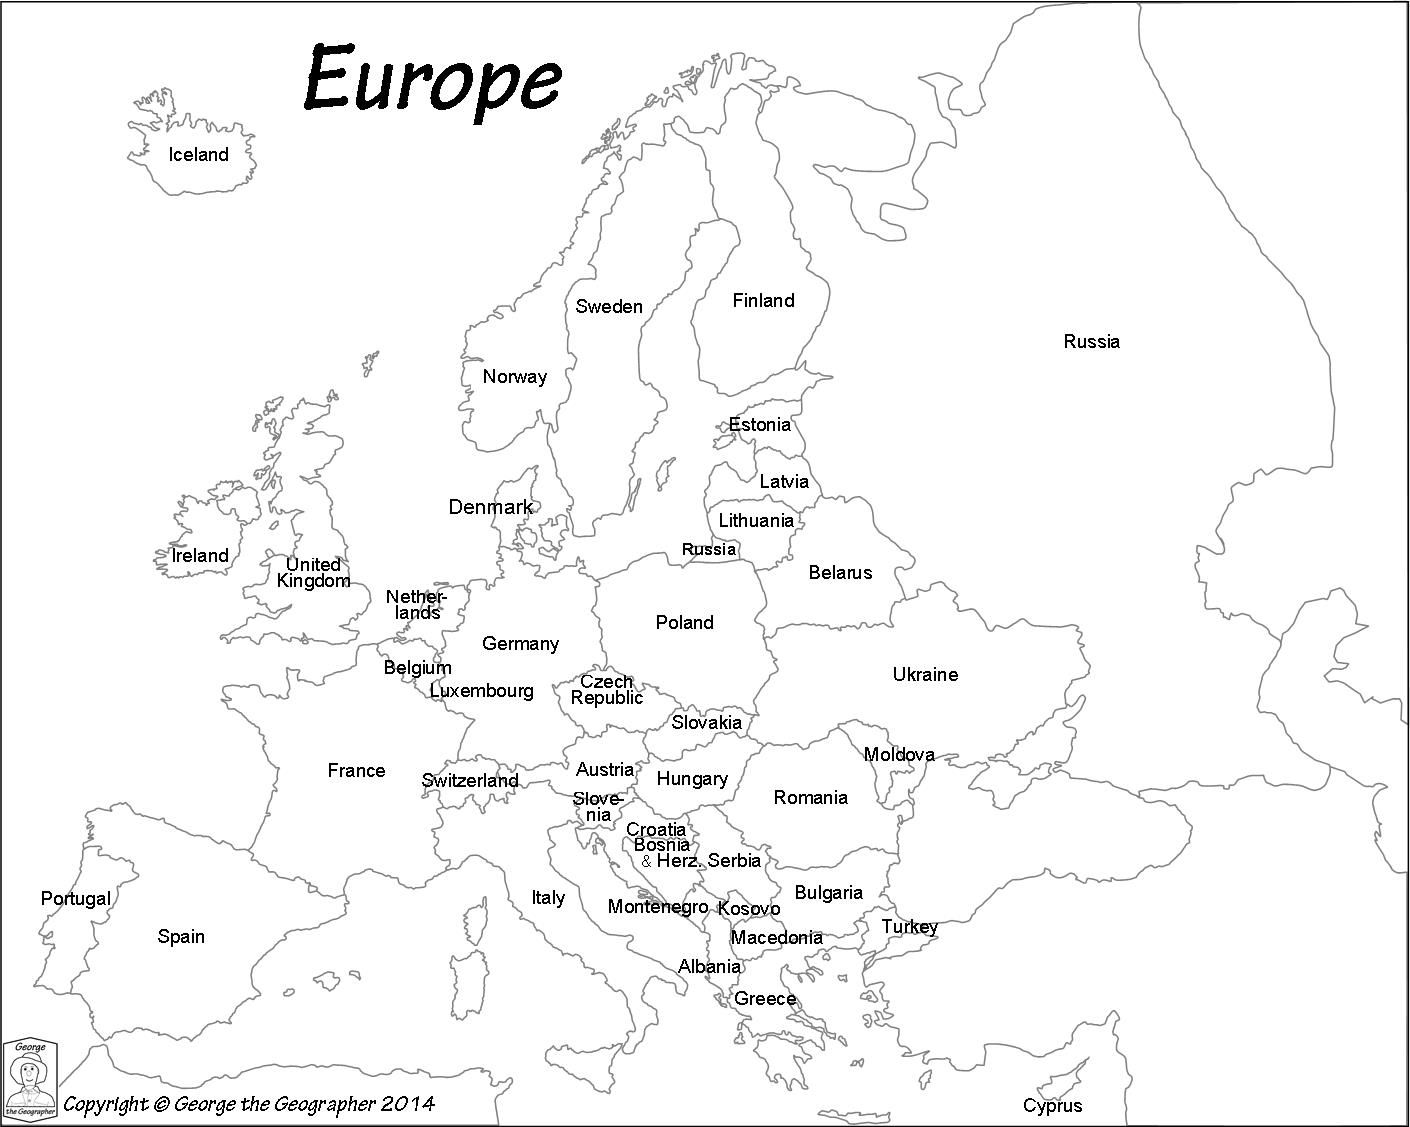 coloring outline map of europe with country names pin by val kruse on 2015 2016 geography map europe map country with names europe map of outline coloring